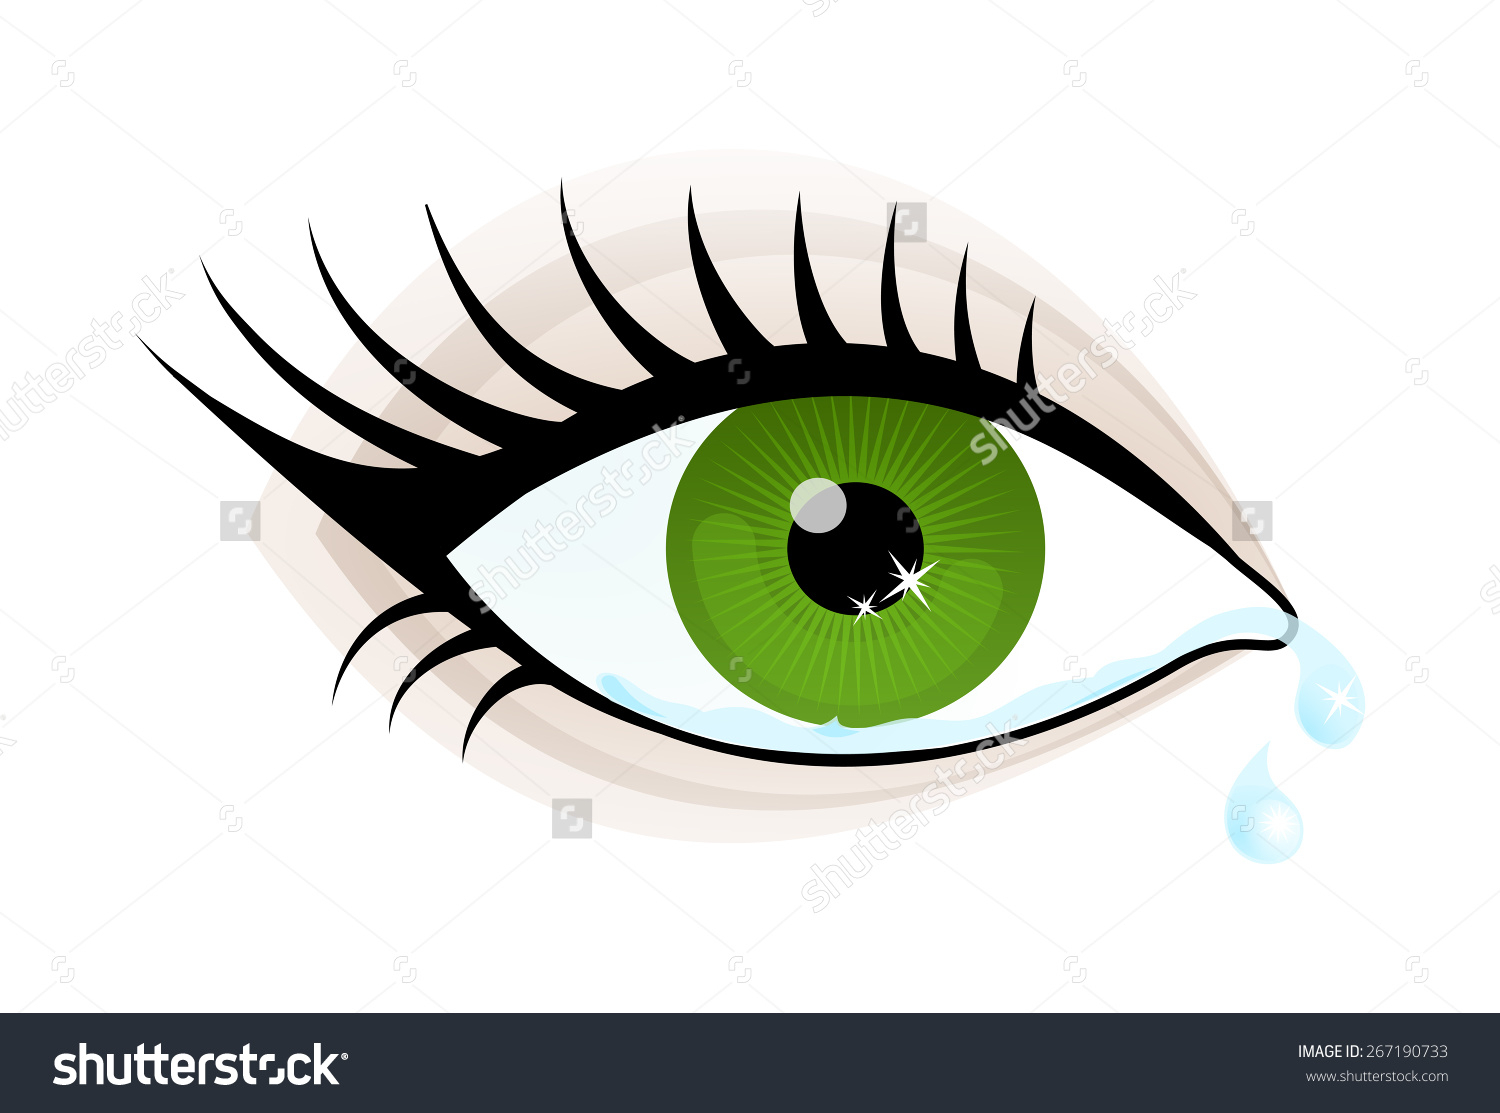 Simple Eye Drawing at GetDrawings.com | Free for personal use Simple ...